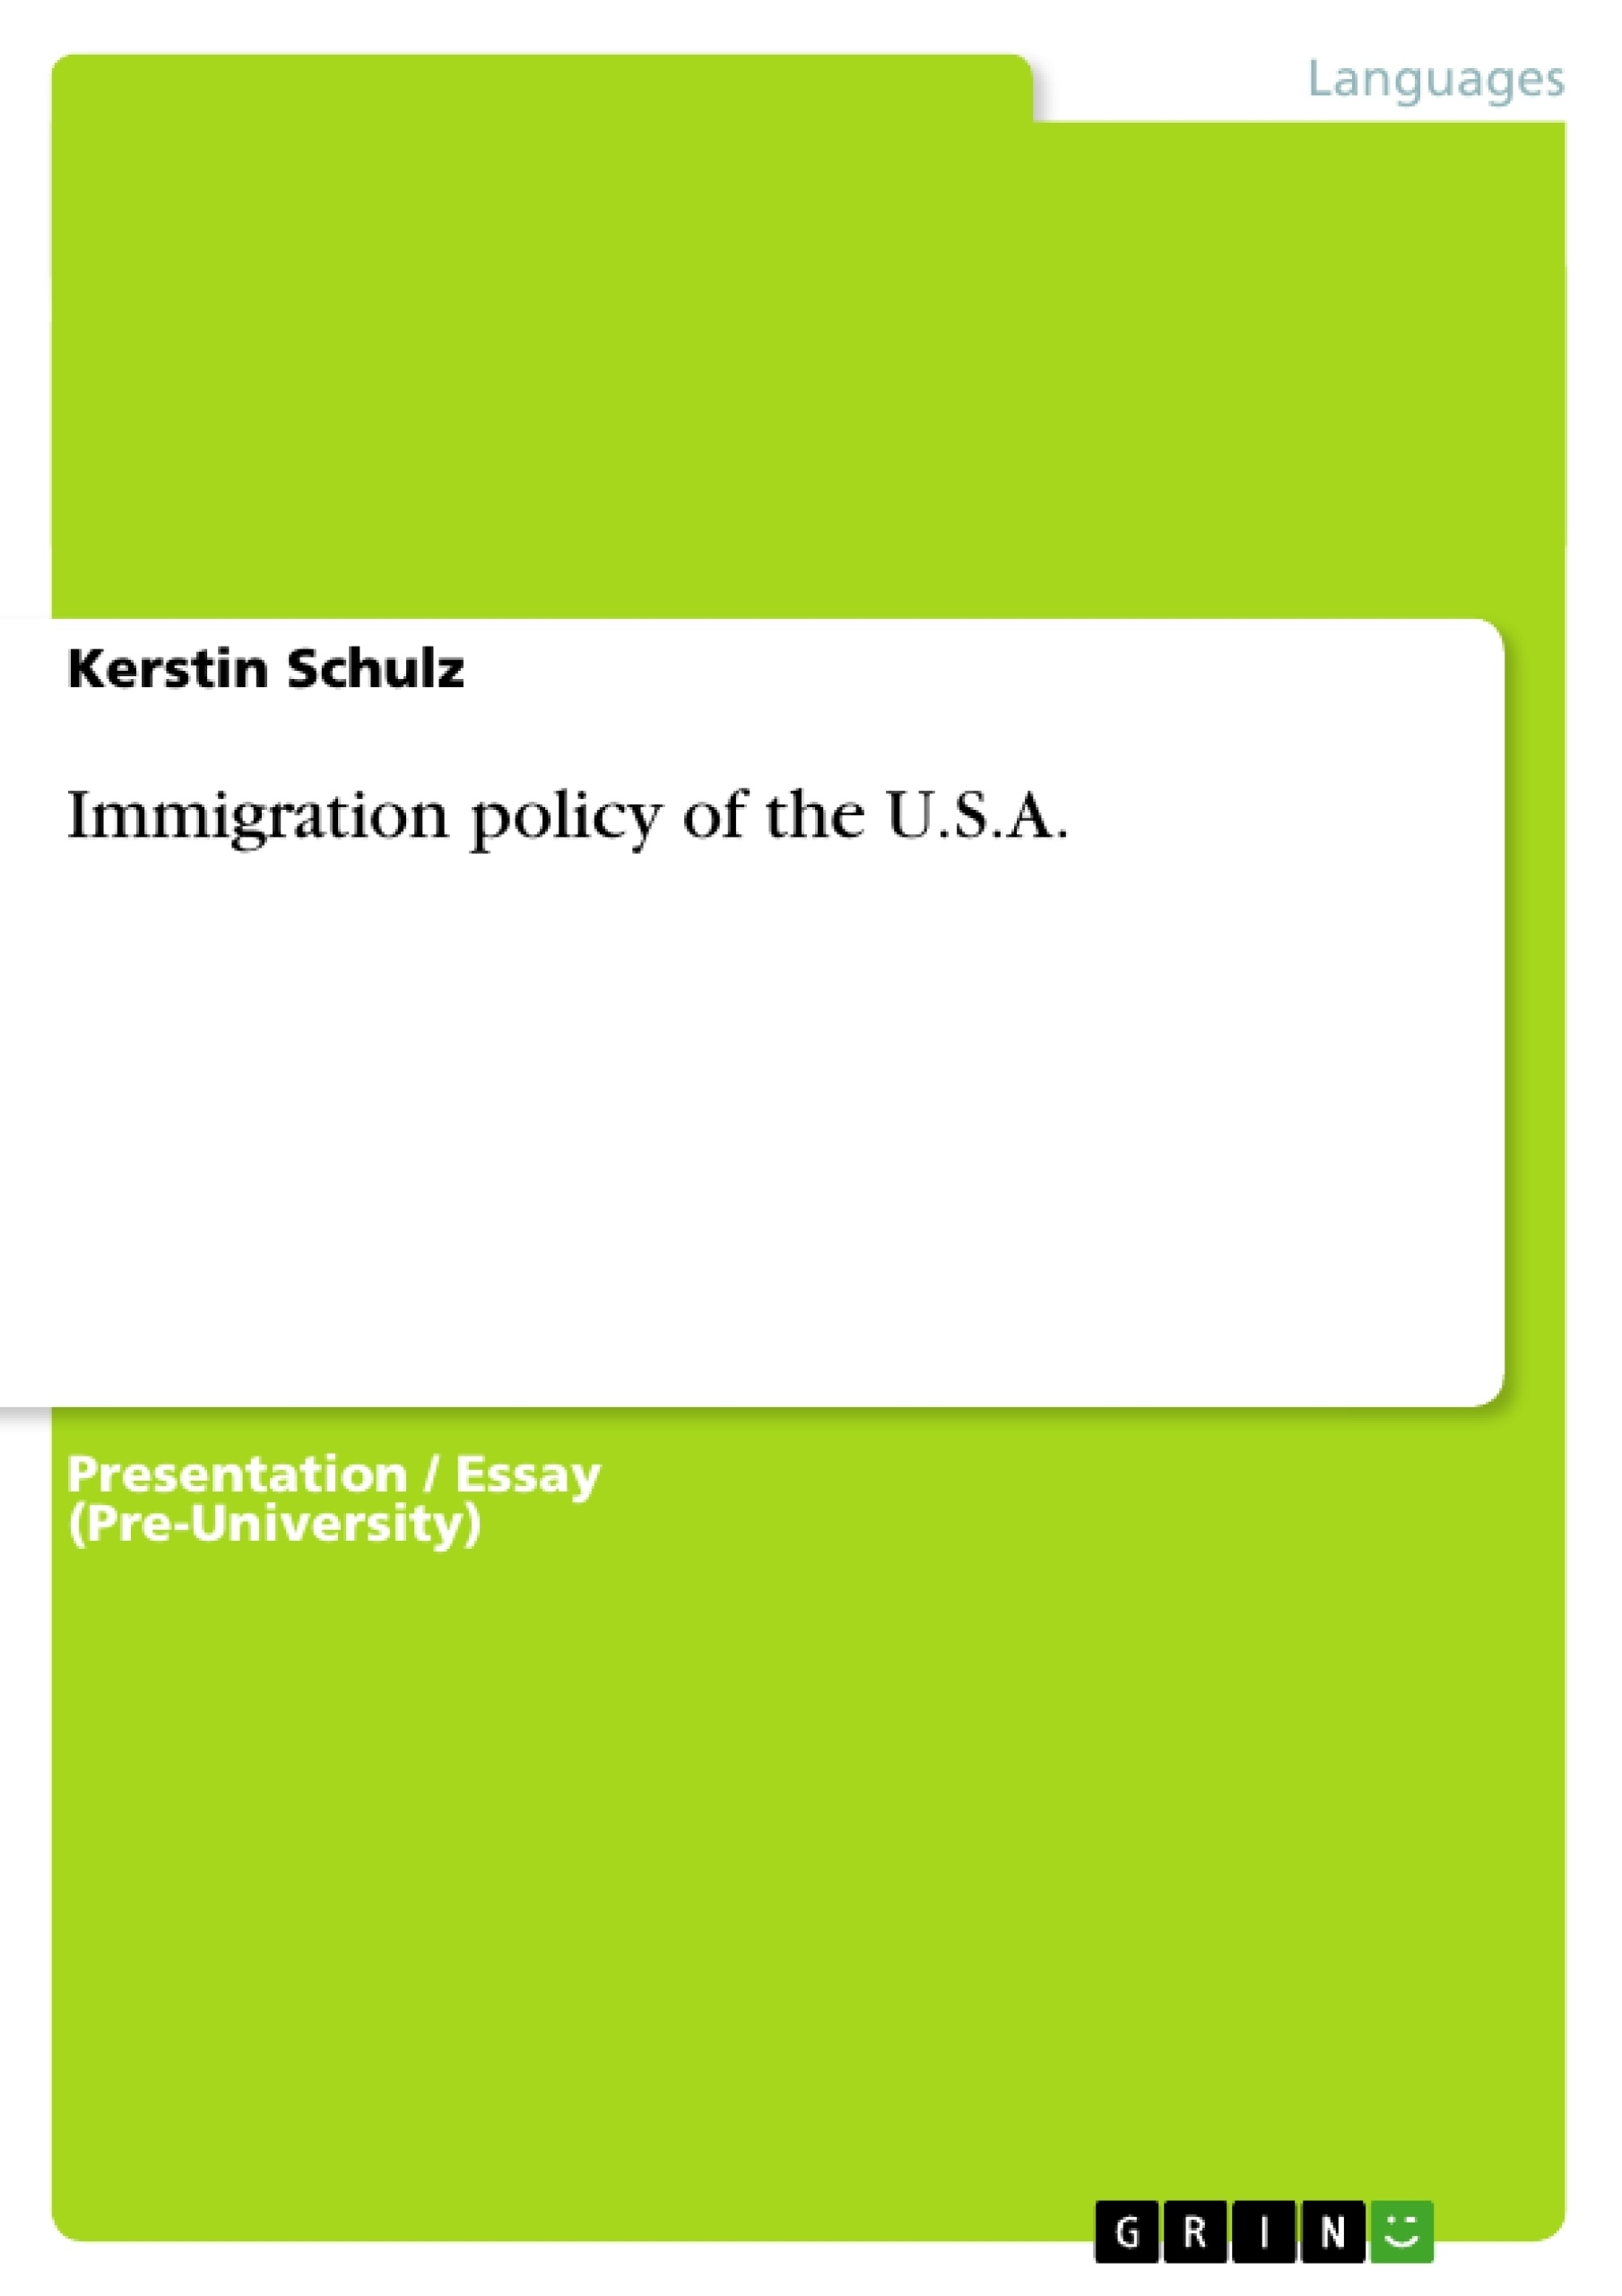 Title: Immigration policy of the U.S.A.